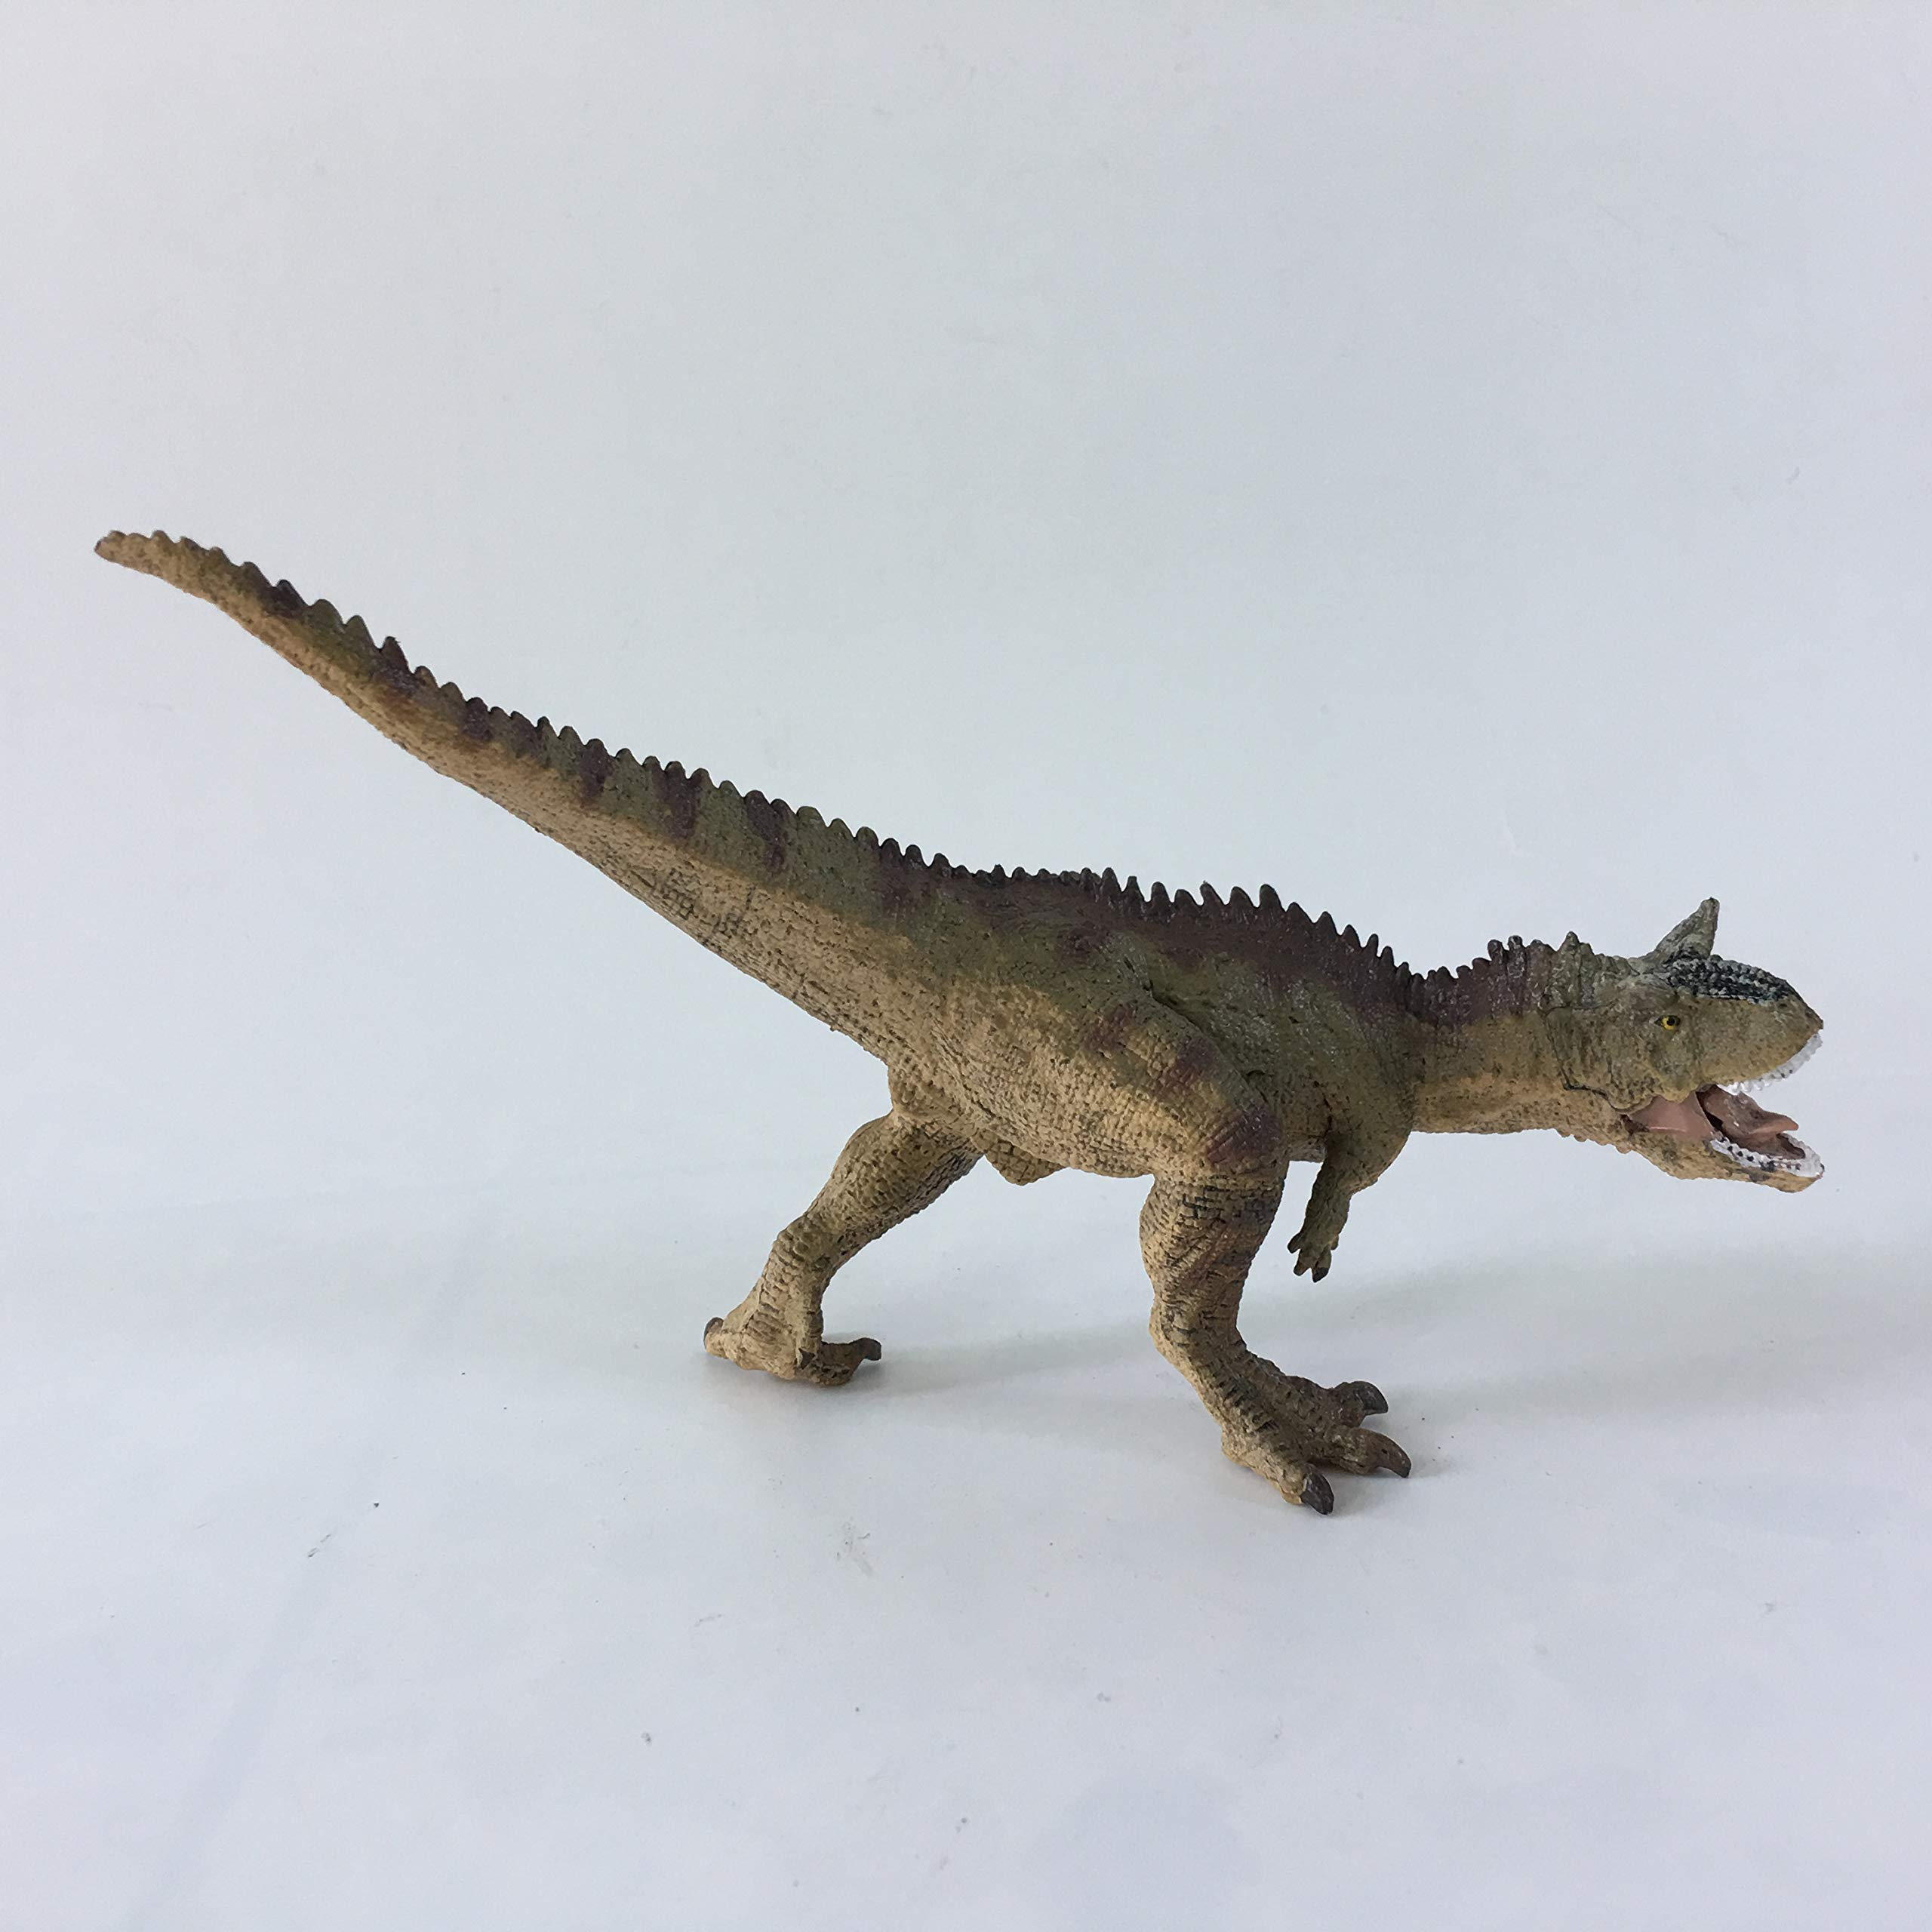 JIENI Educational Dinosaur Toys, Kids Realistic Toy Dinosaur Figures Authentic Type Plastic Dinosaurs Jurassic Dinosaur Statue Kids and Toddler Education ( M5012 )